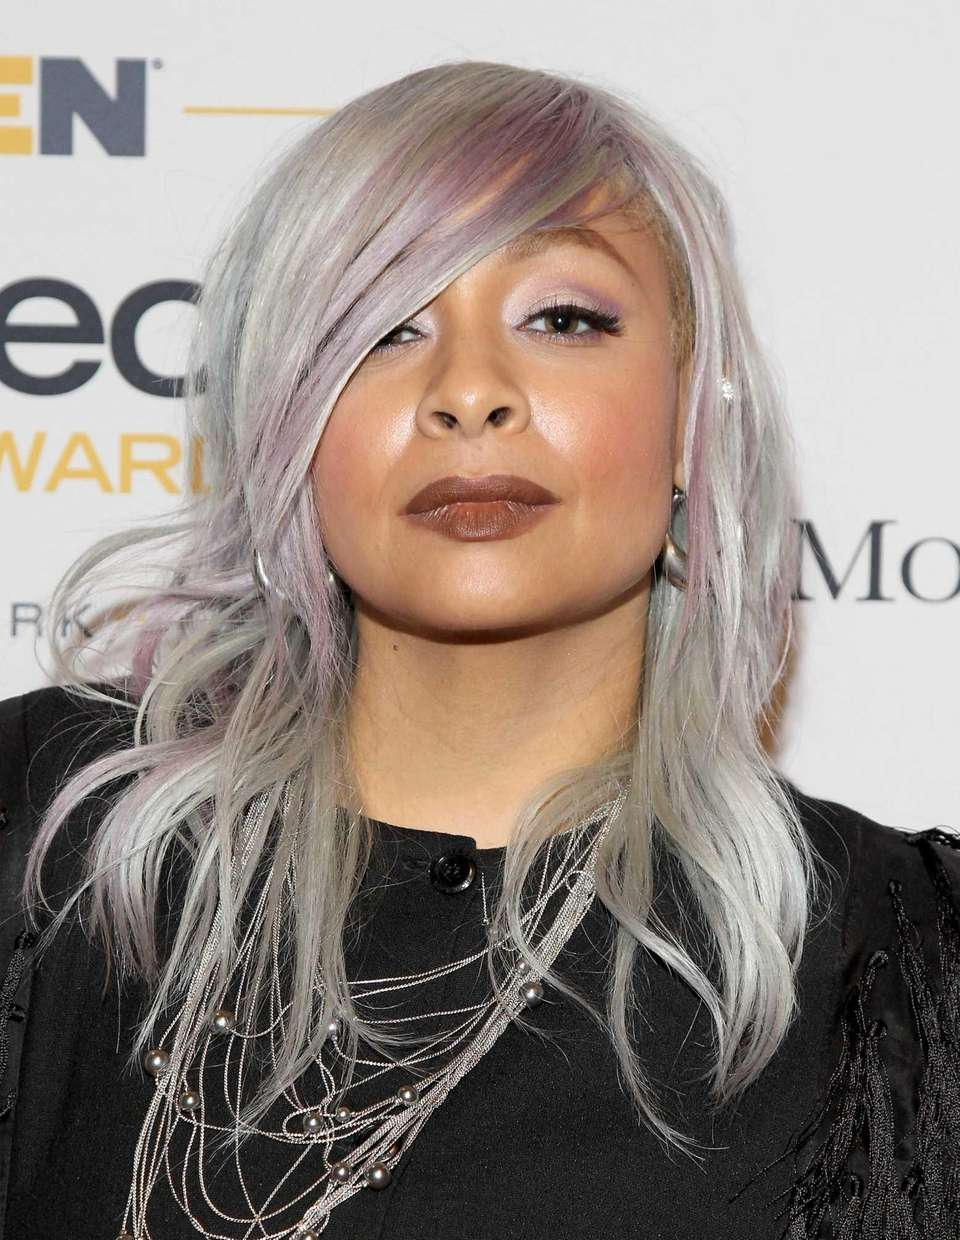 Actress Raven-Symoné was a co-panelist of